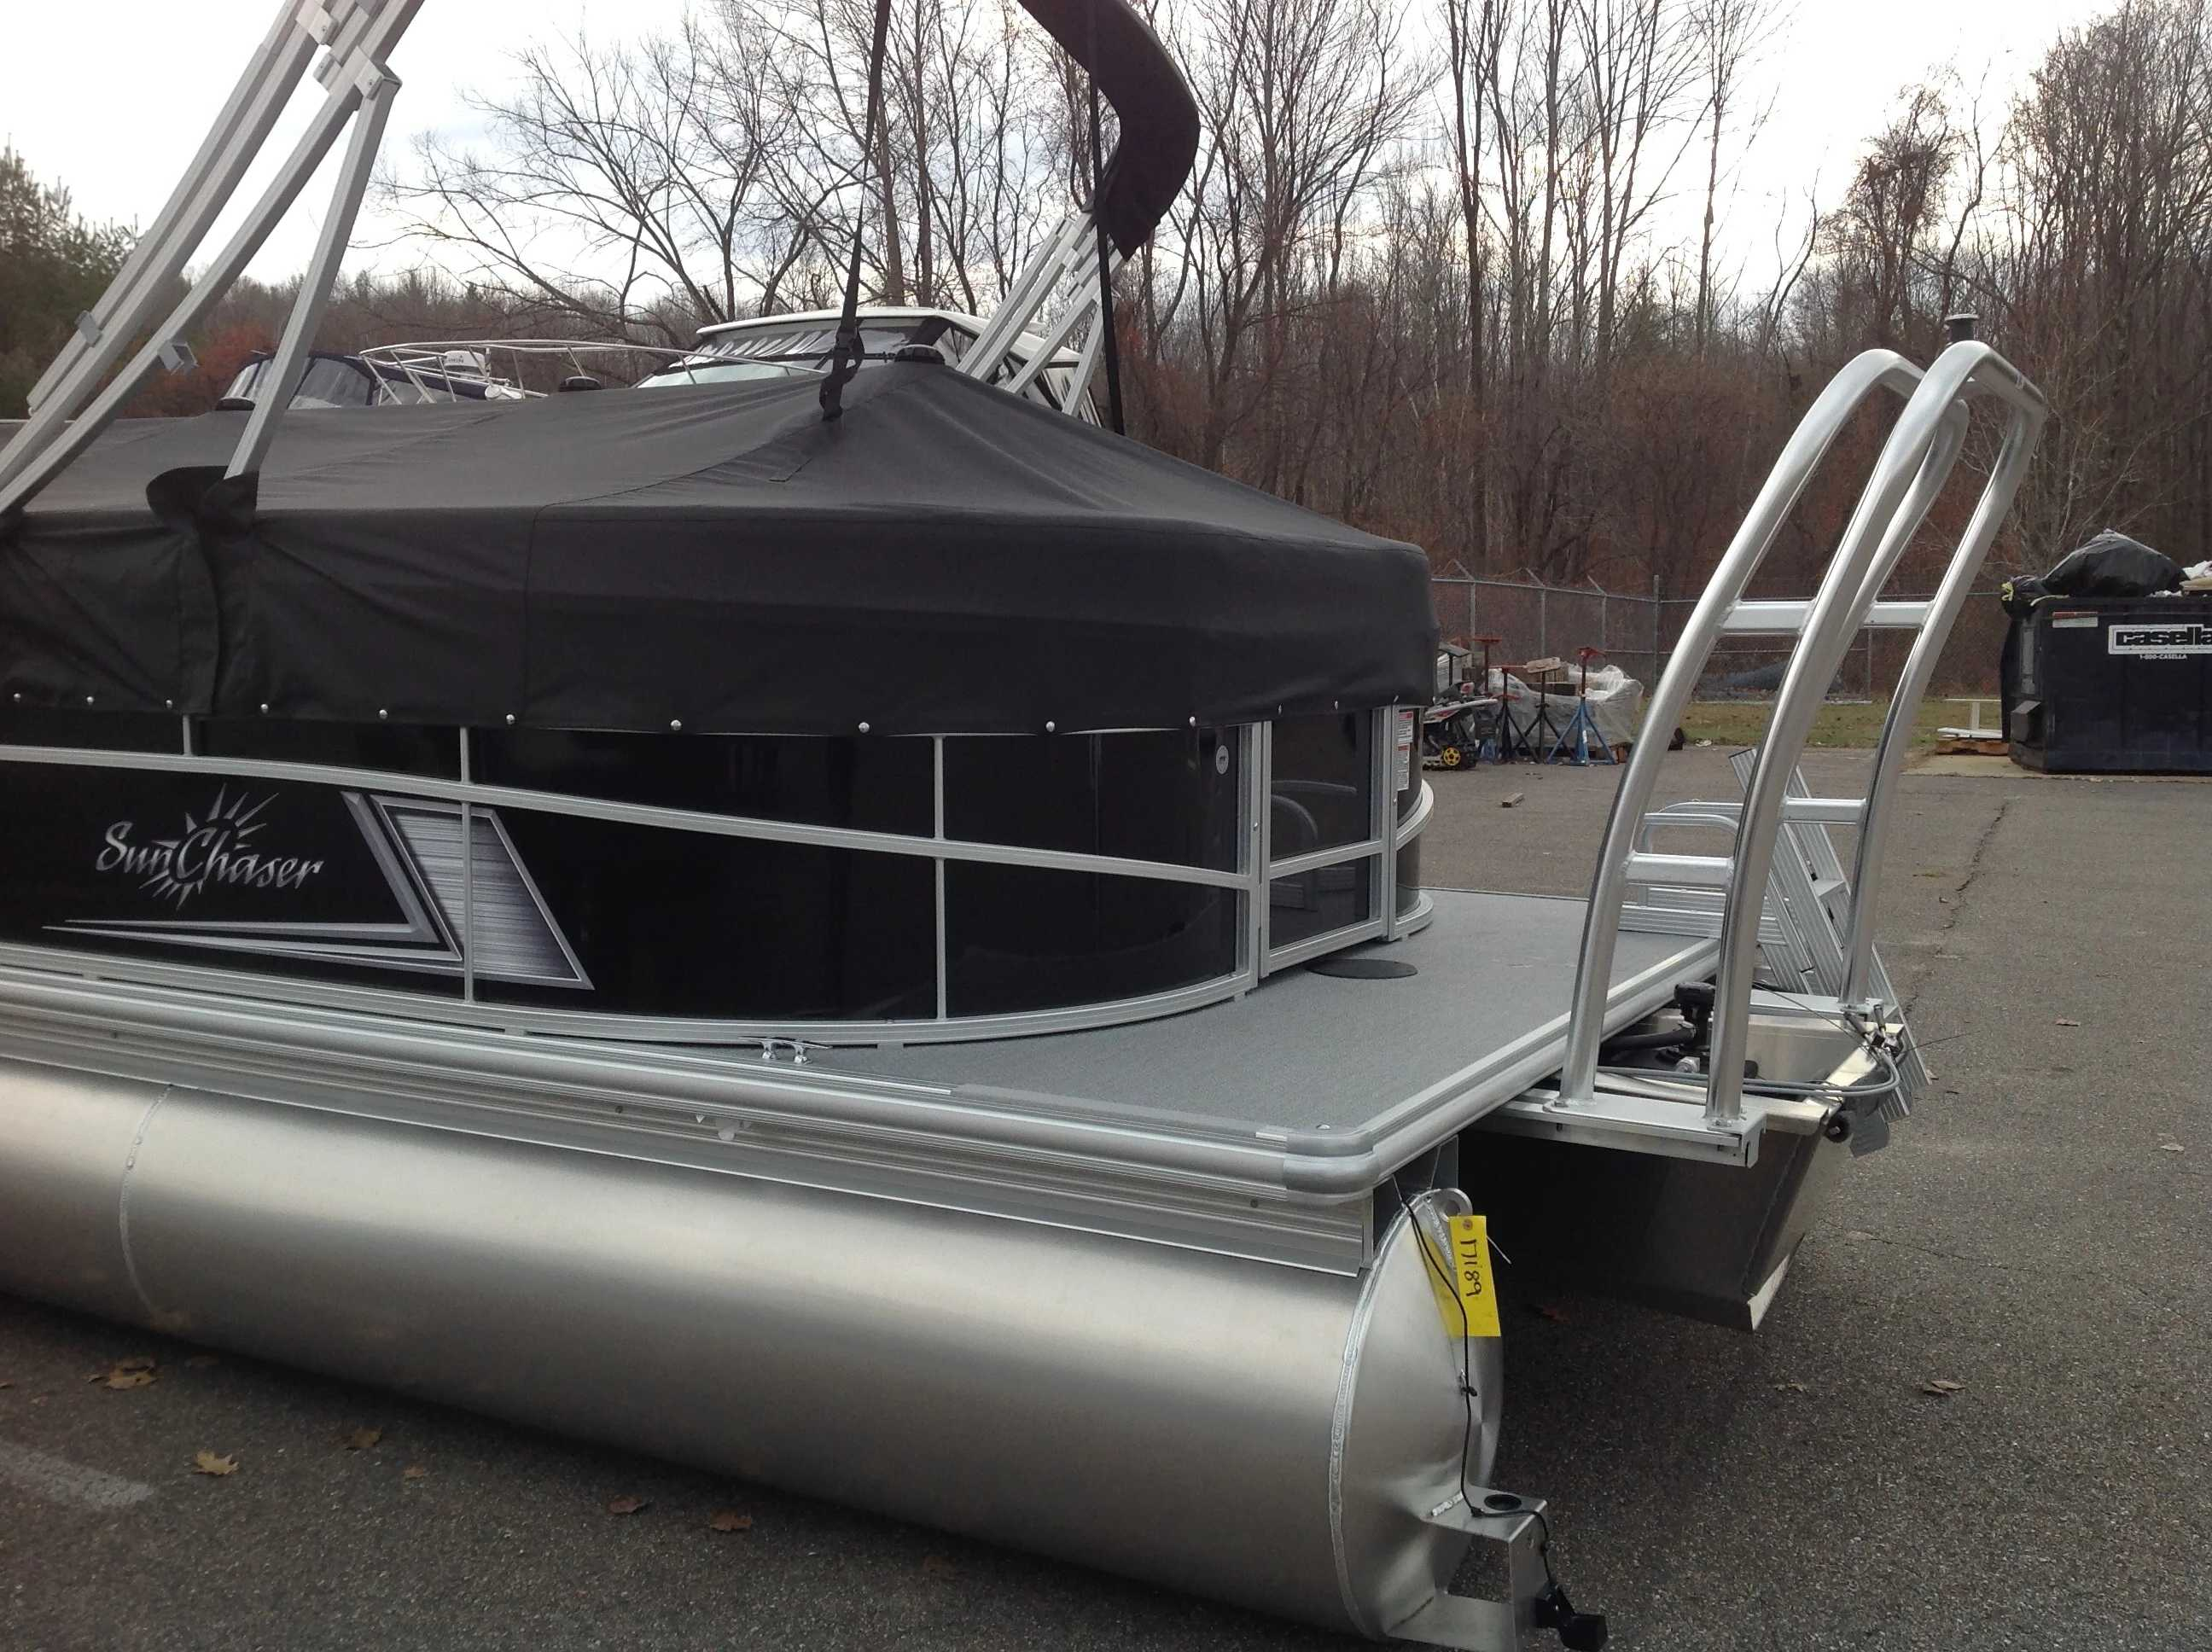 2021 SunChaser boat for sale, model of the boat is Sunchaser & Image # 10 of 10